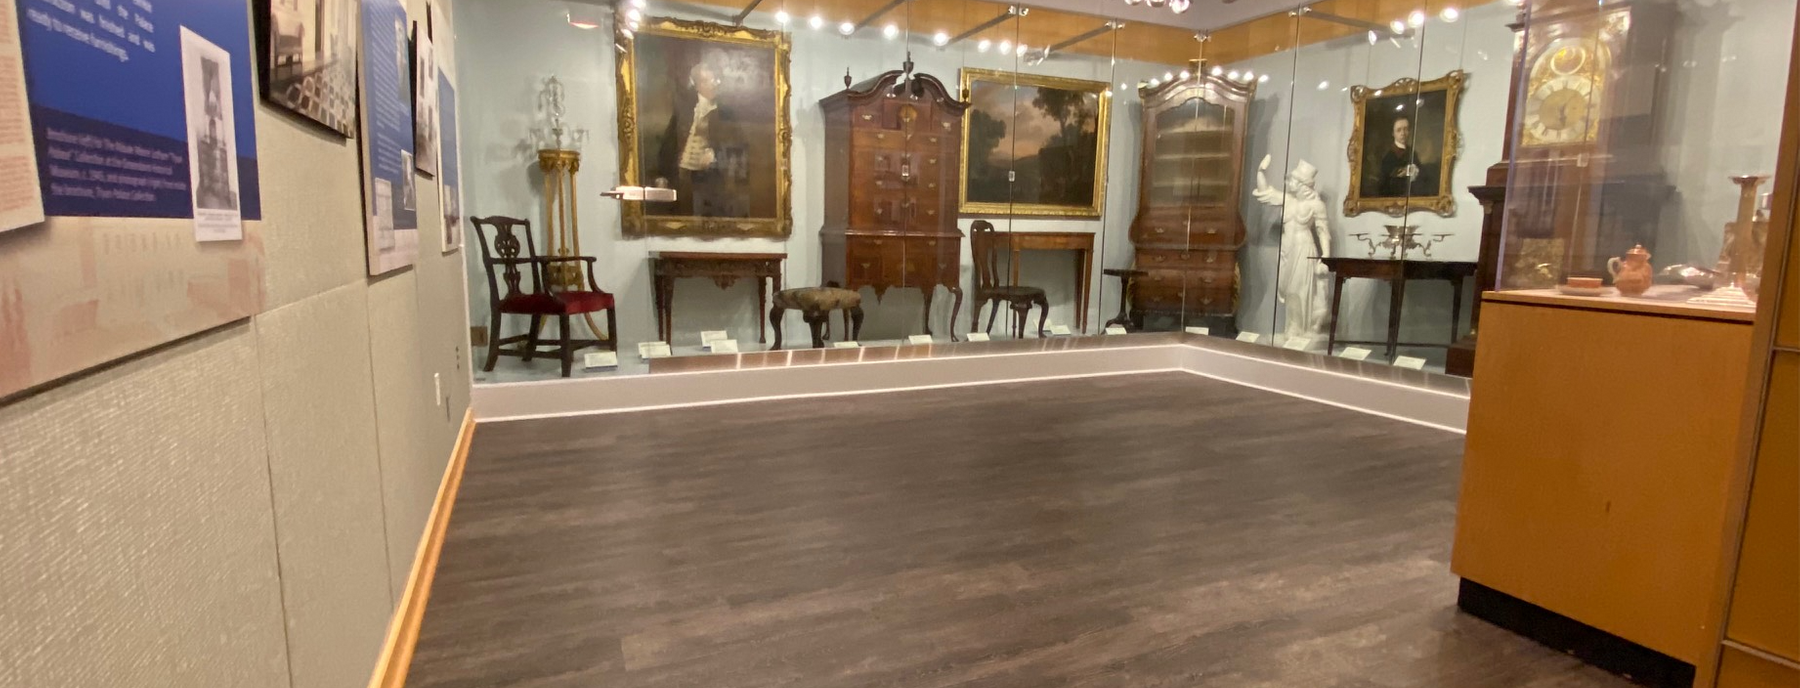 Guion Gallery located in the North Carolina History Center